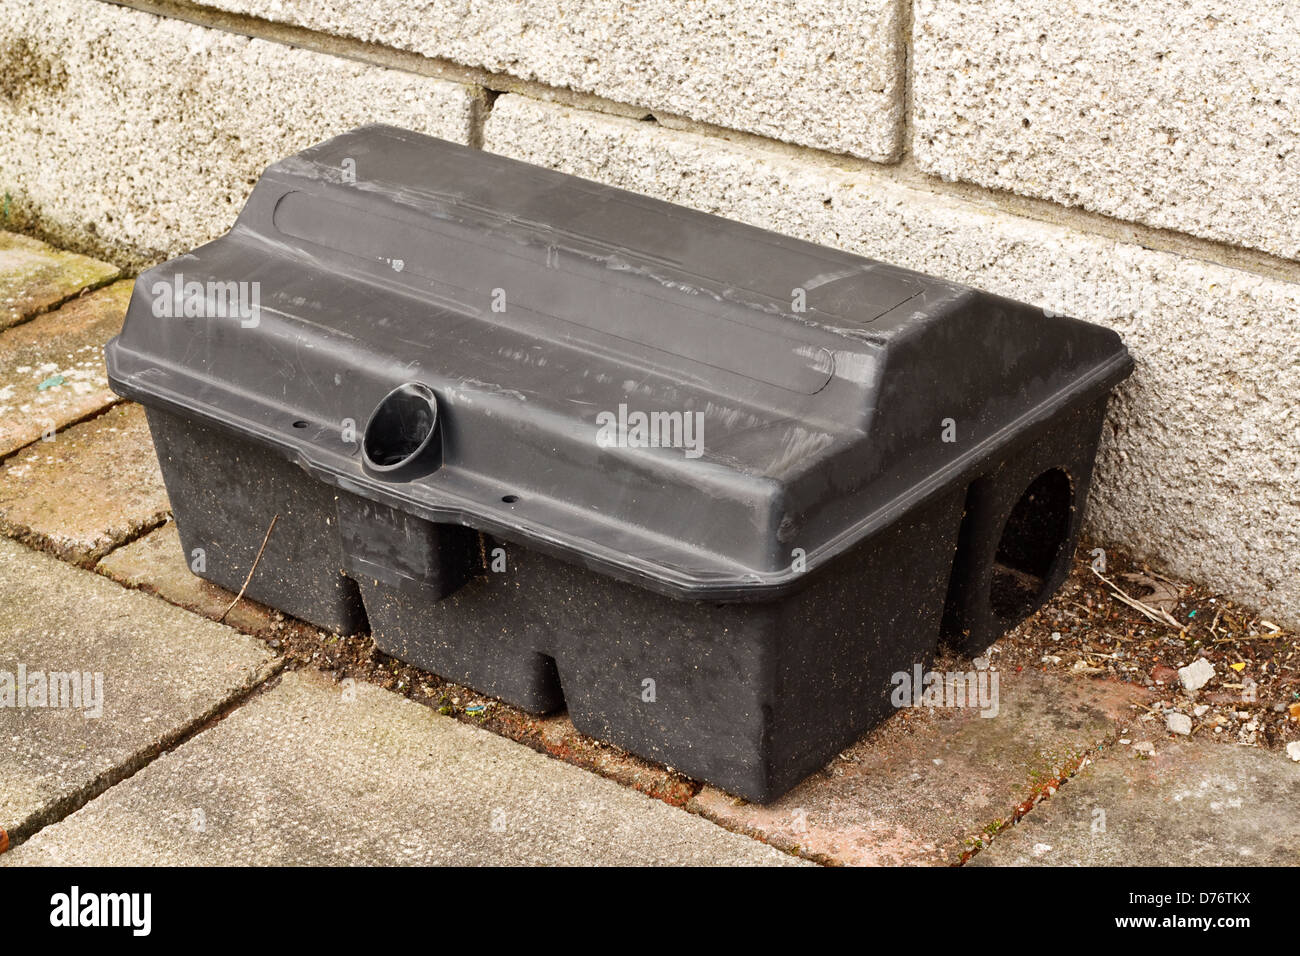 Rat trap for baiting rats without harming household pets - Stock Image